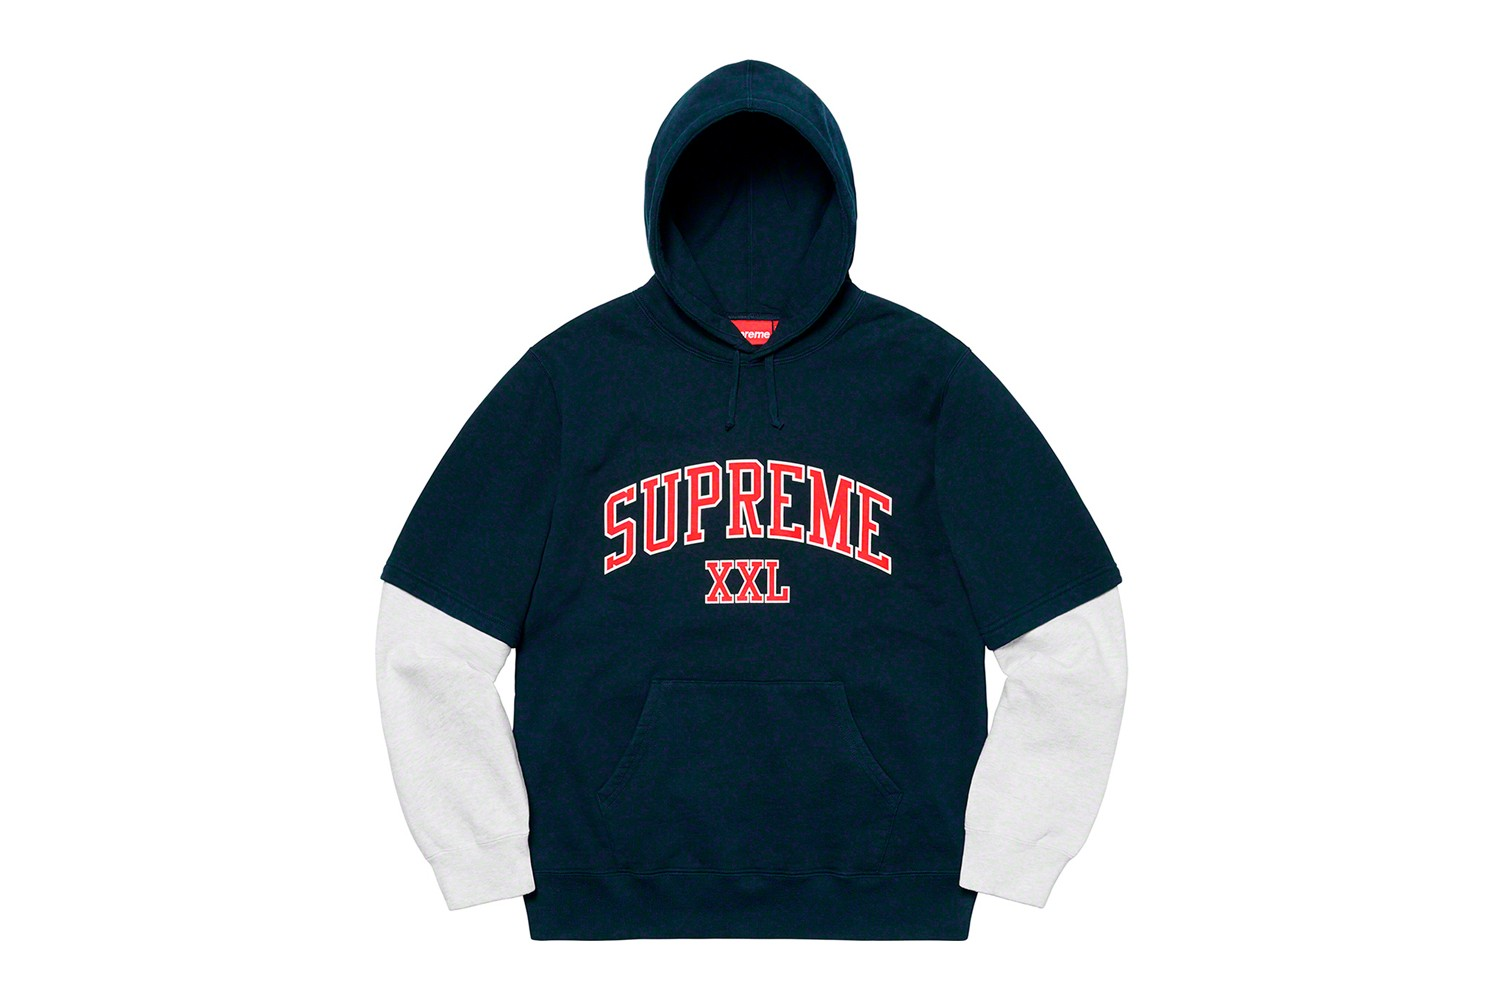 Supreme Spring Summer 2020 Week 1 Online Release Drop List 4 Palace Skateboards DIME BEAMS Columbia BAPE The Mandalorian Praying maharishi END. Stone Island